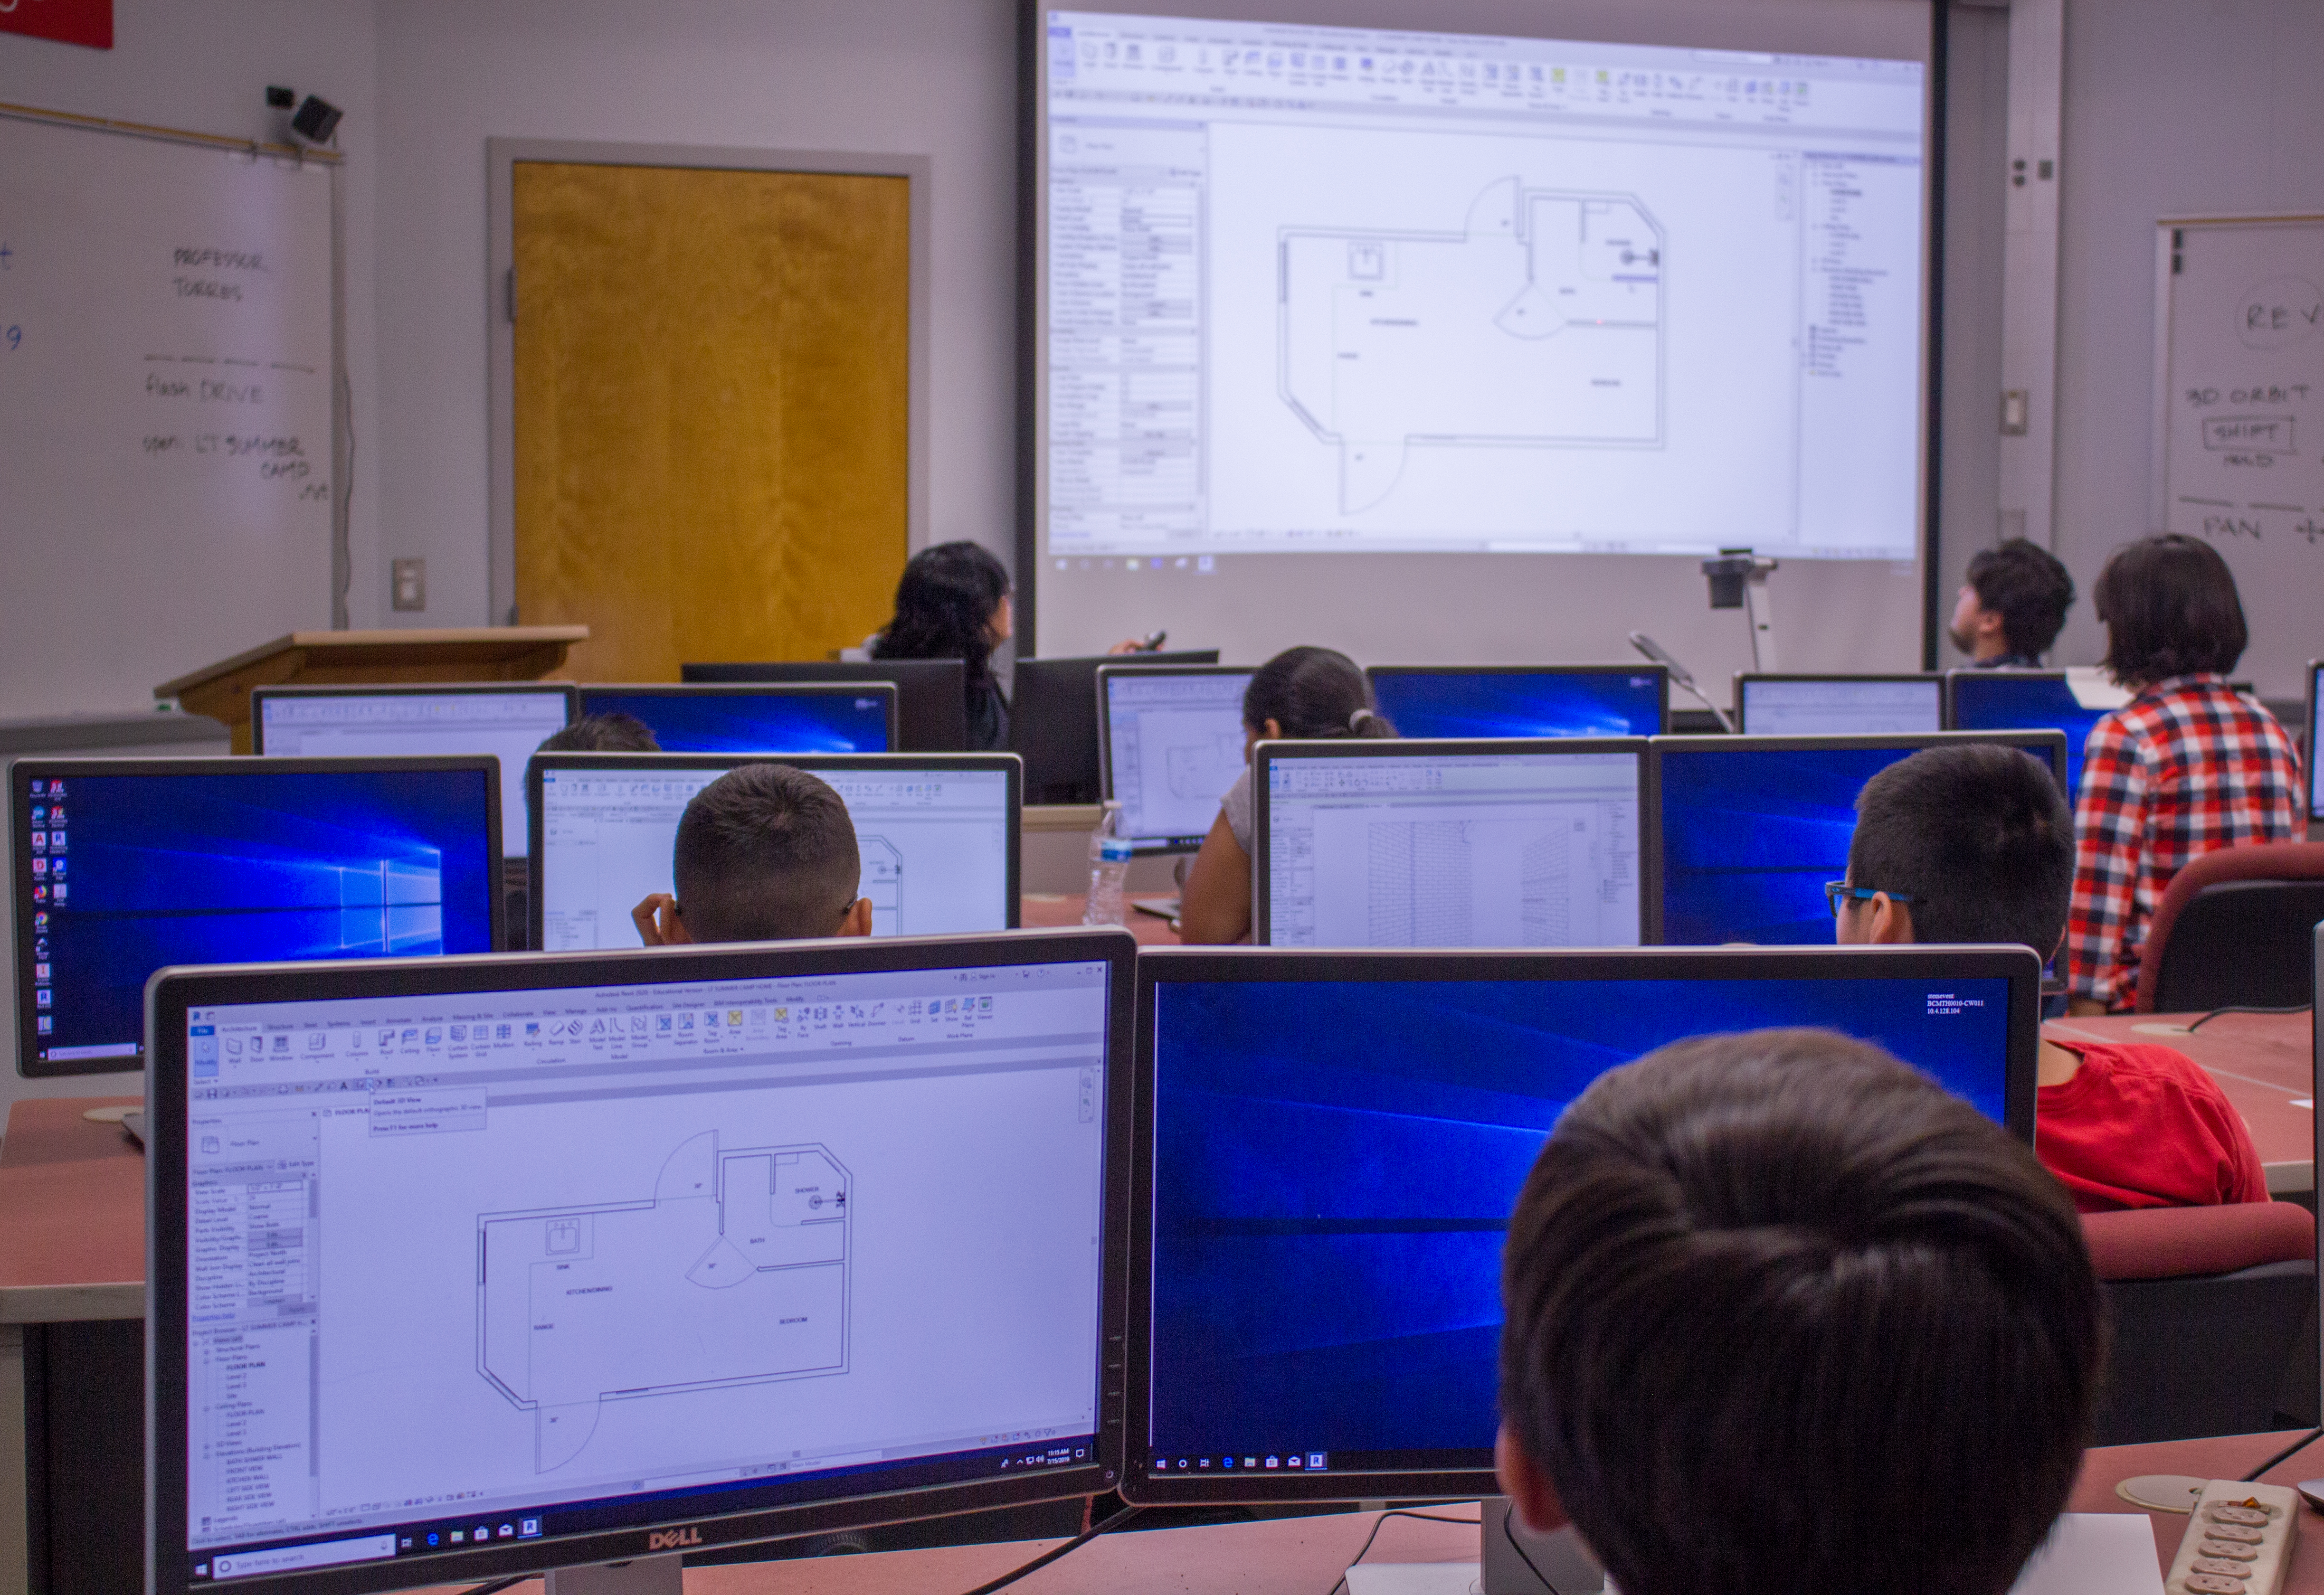 Students at desks looking at computer screens with architecture plans.